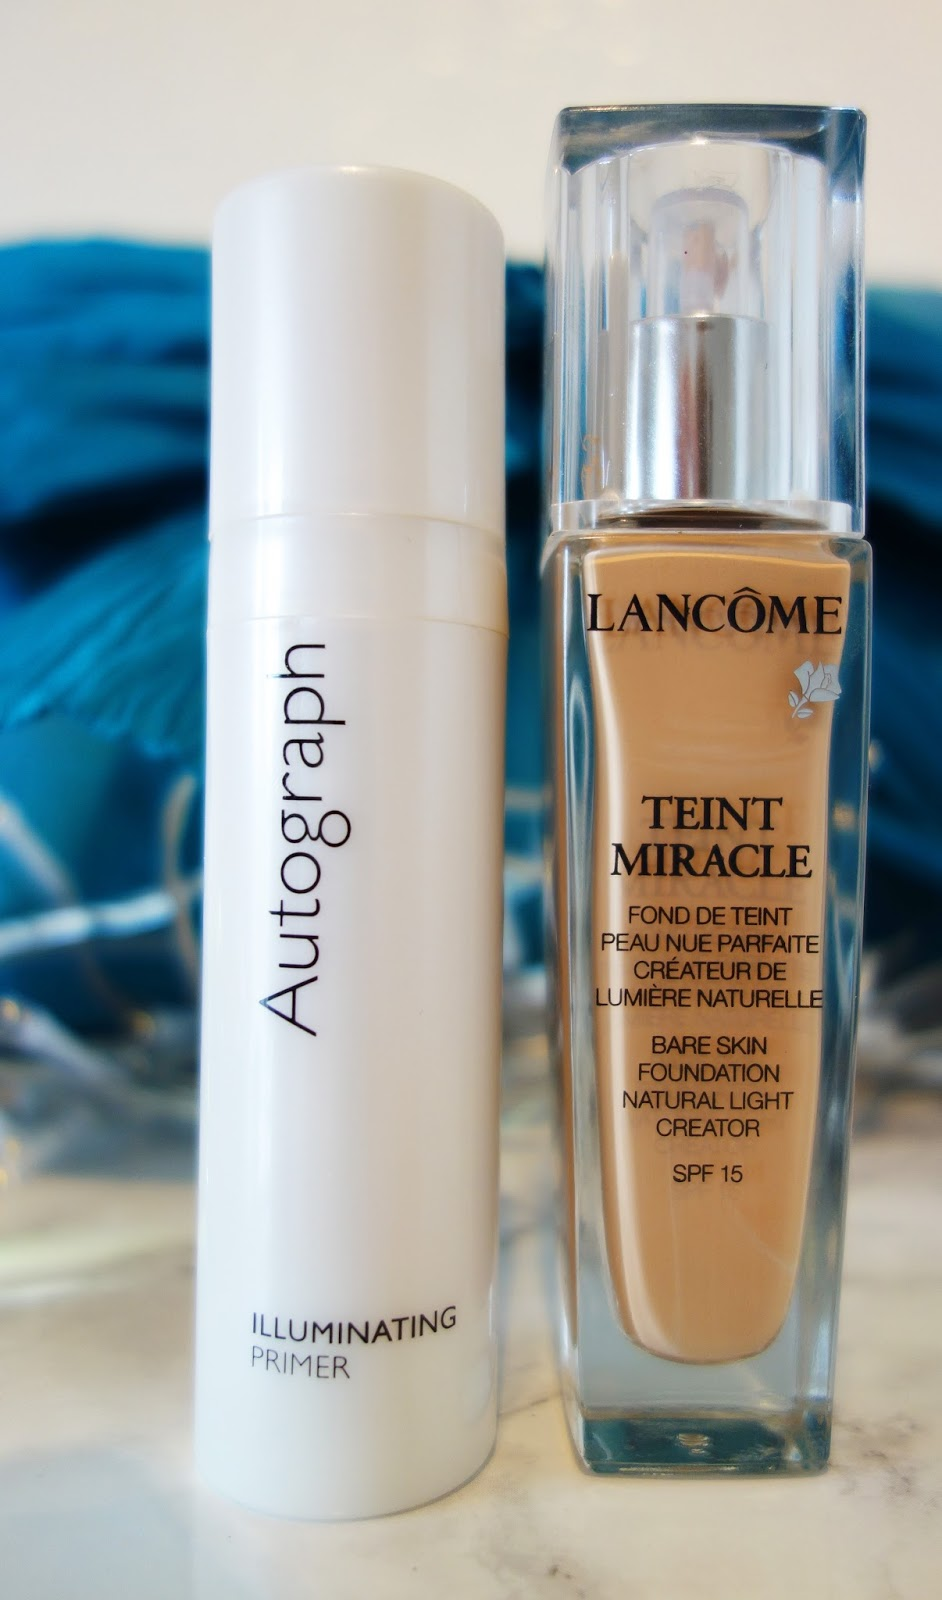 A foundation for summer and a primer to make it look great